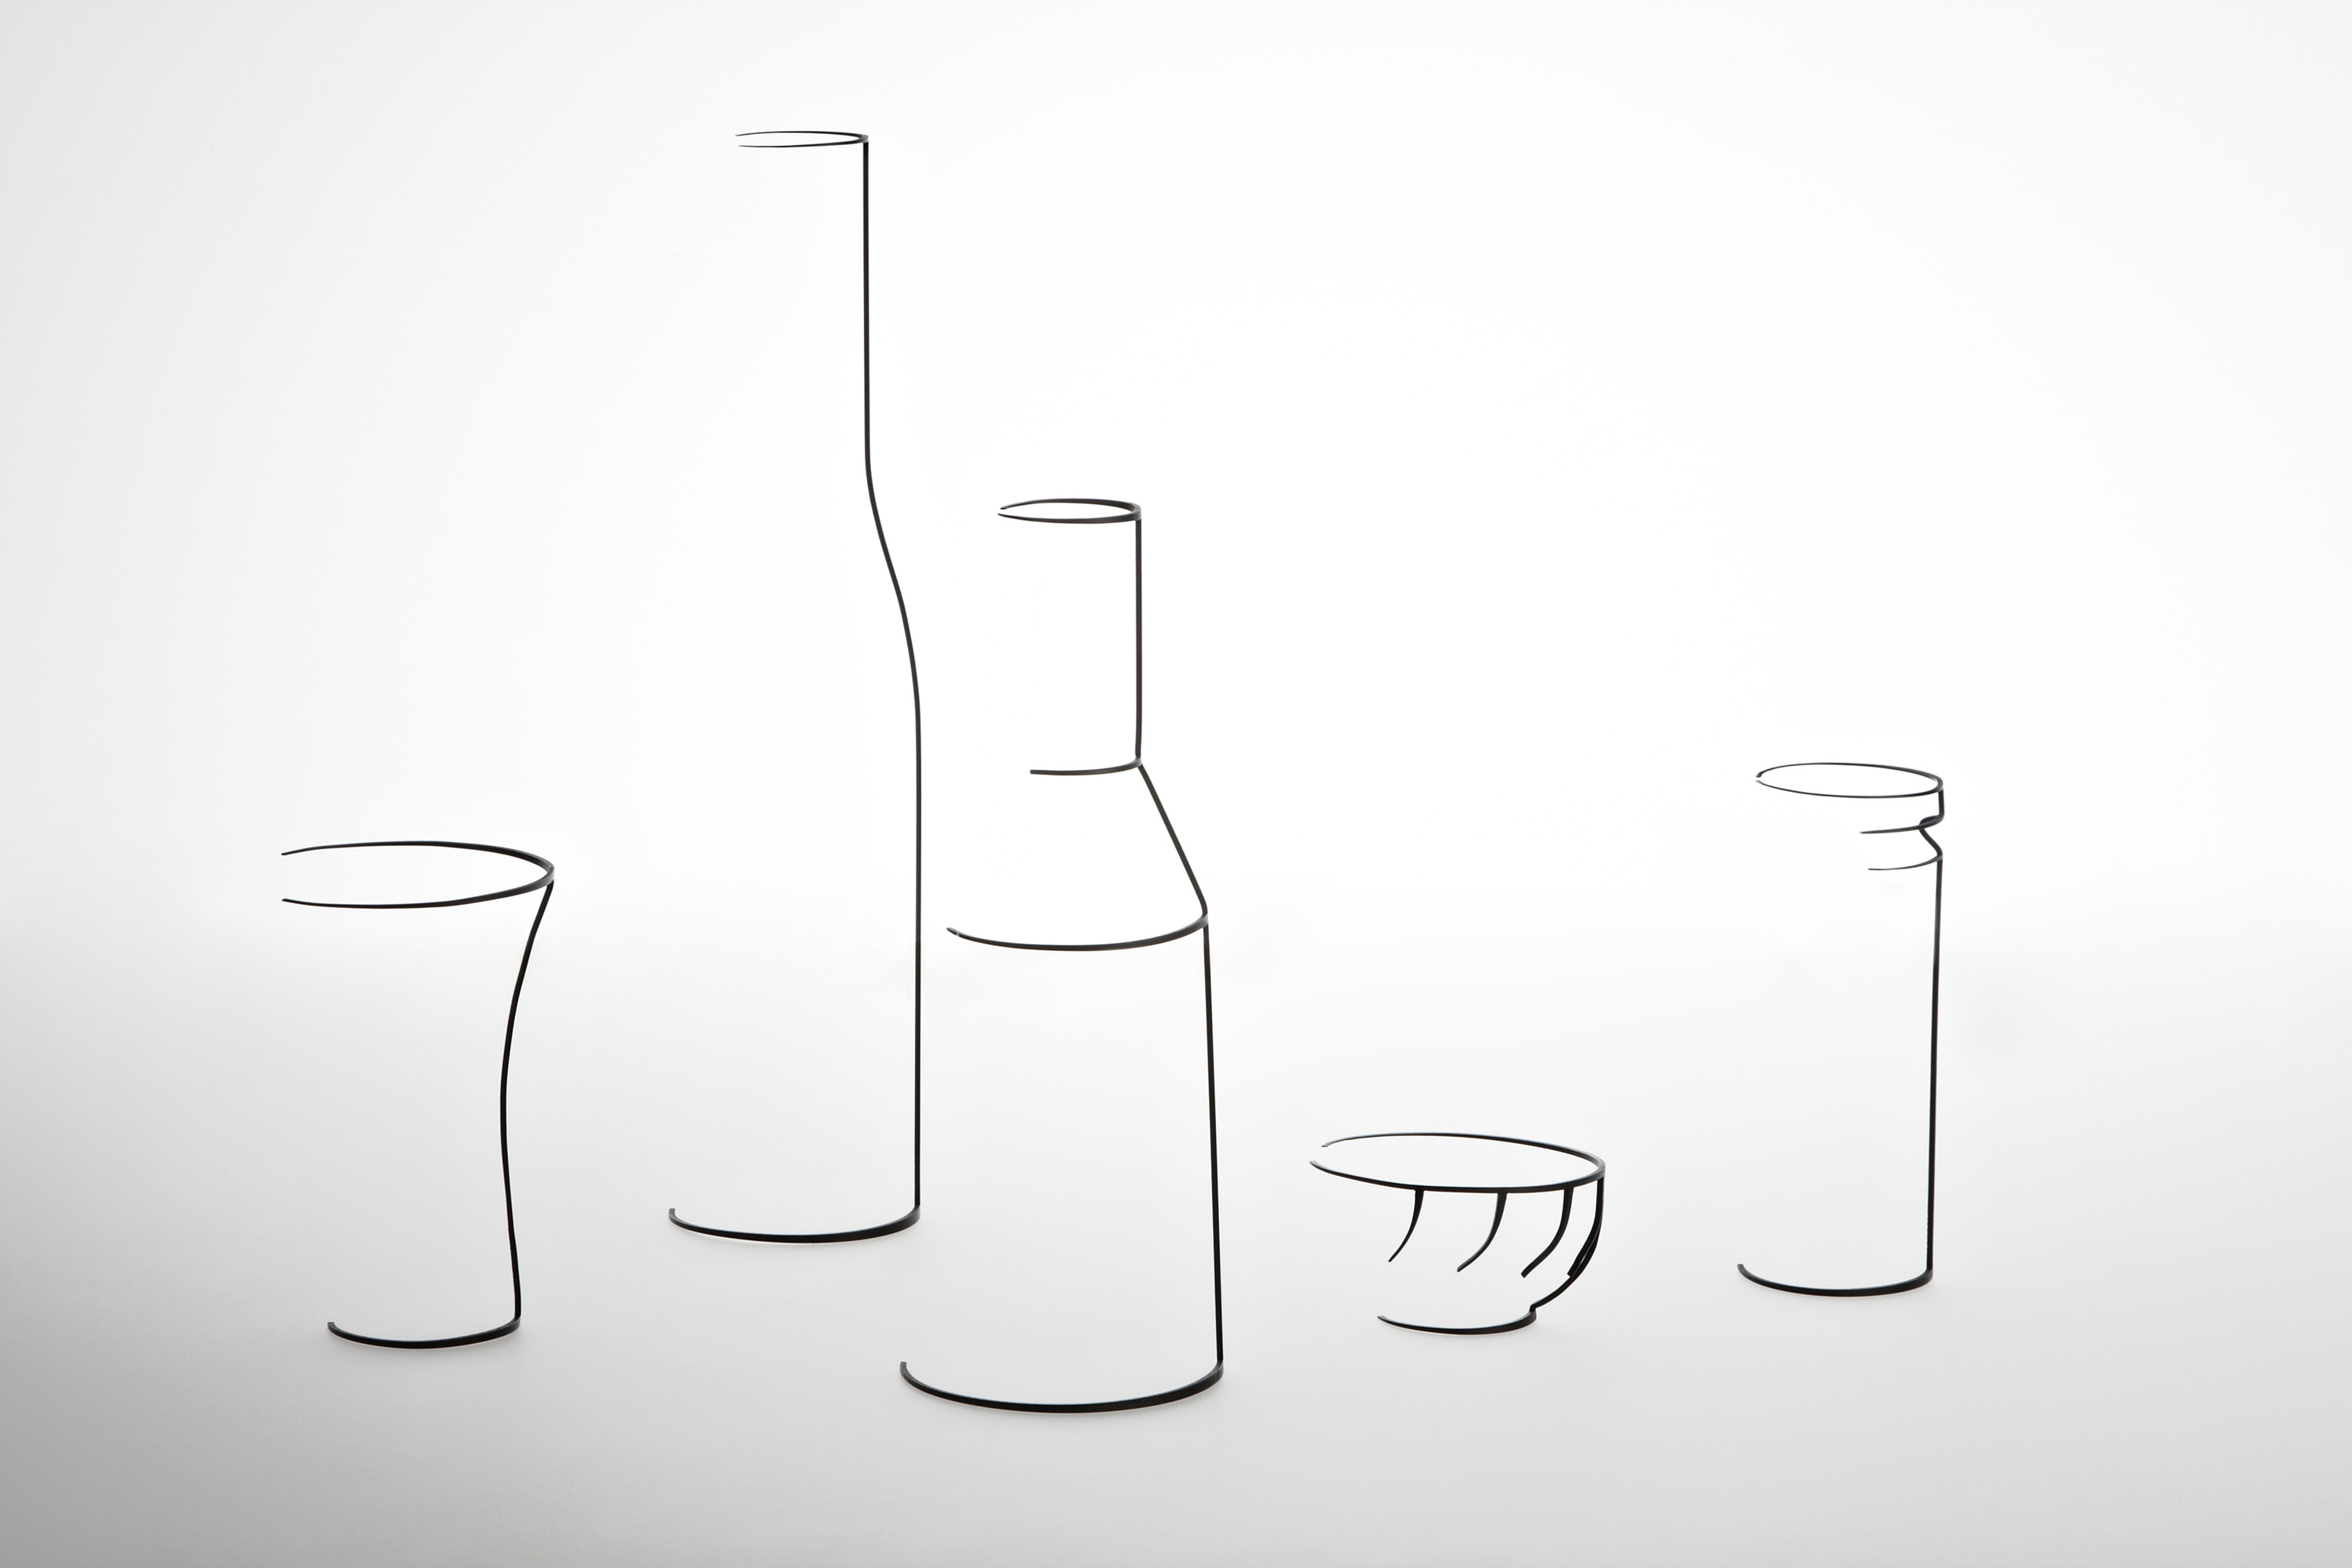 subtle line sculptures tracing the outlines of familiar objects